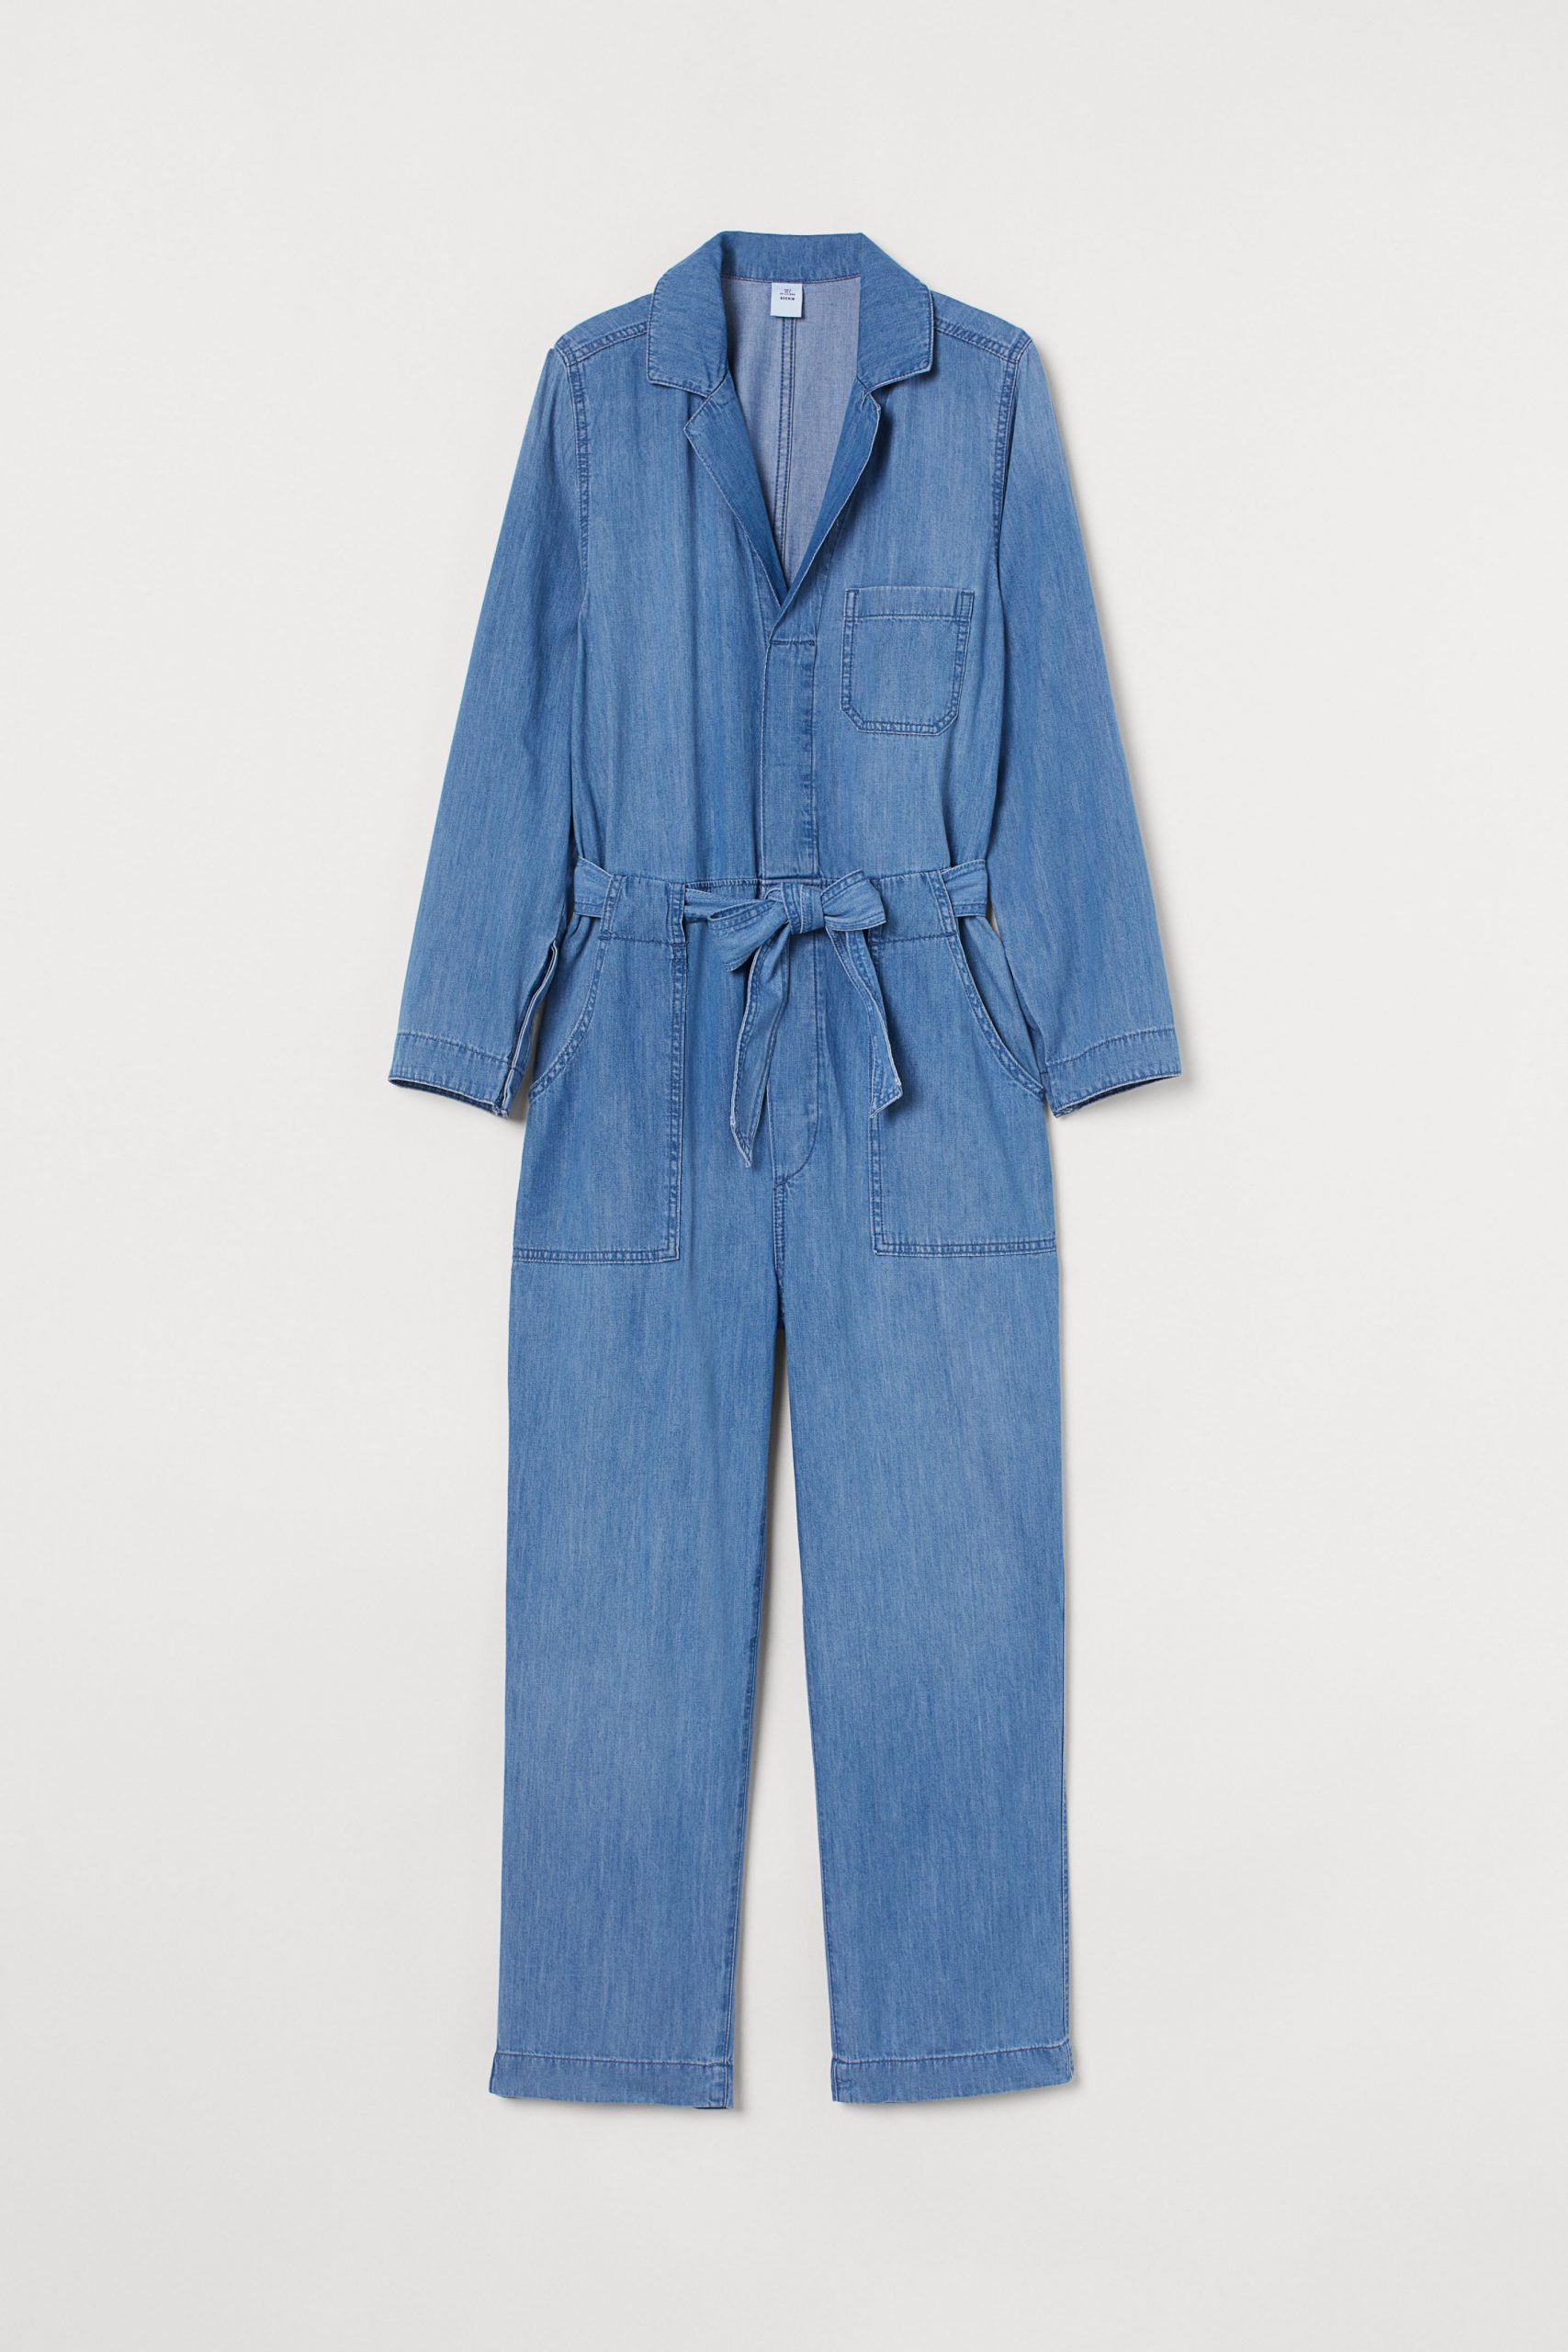 Denim boiler suit in soft recycled cotton